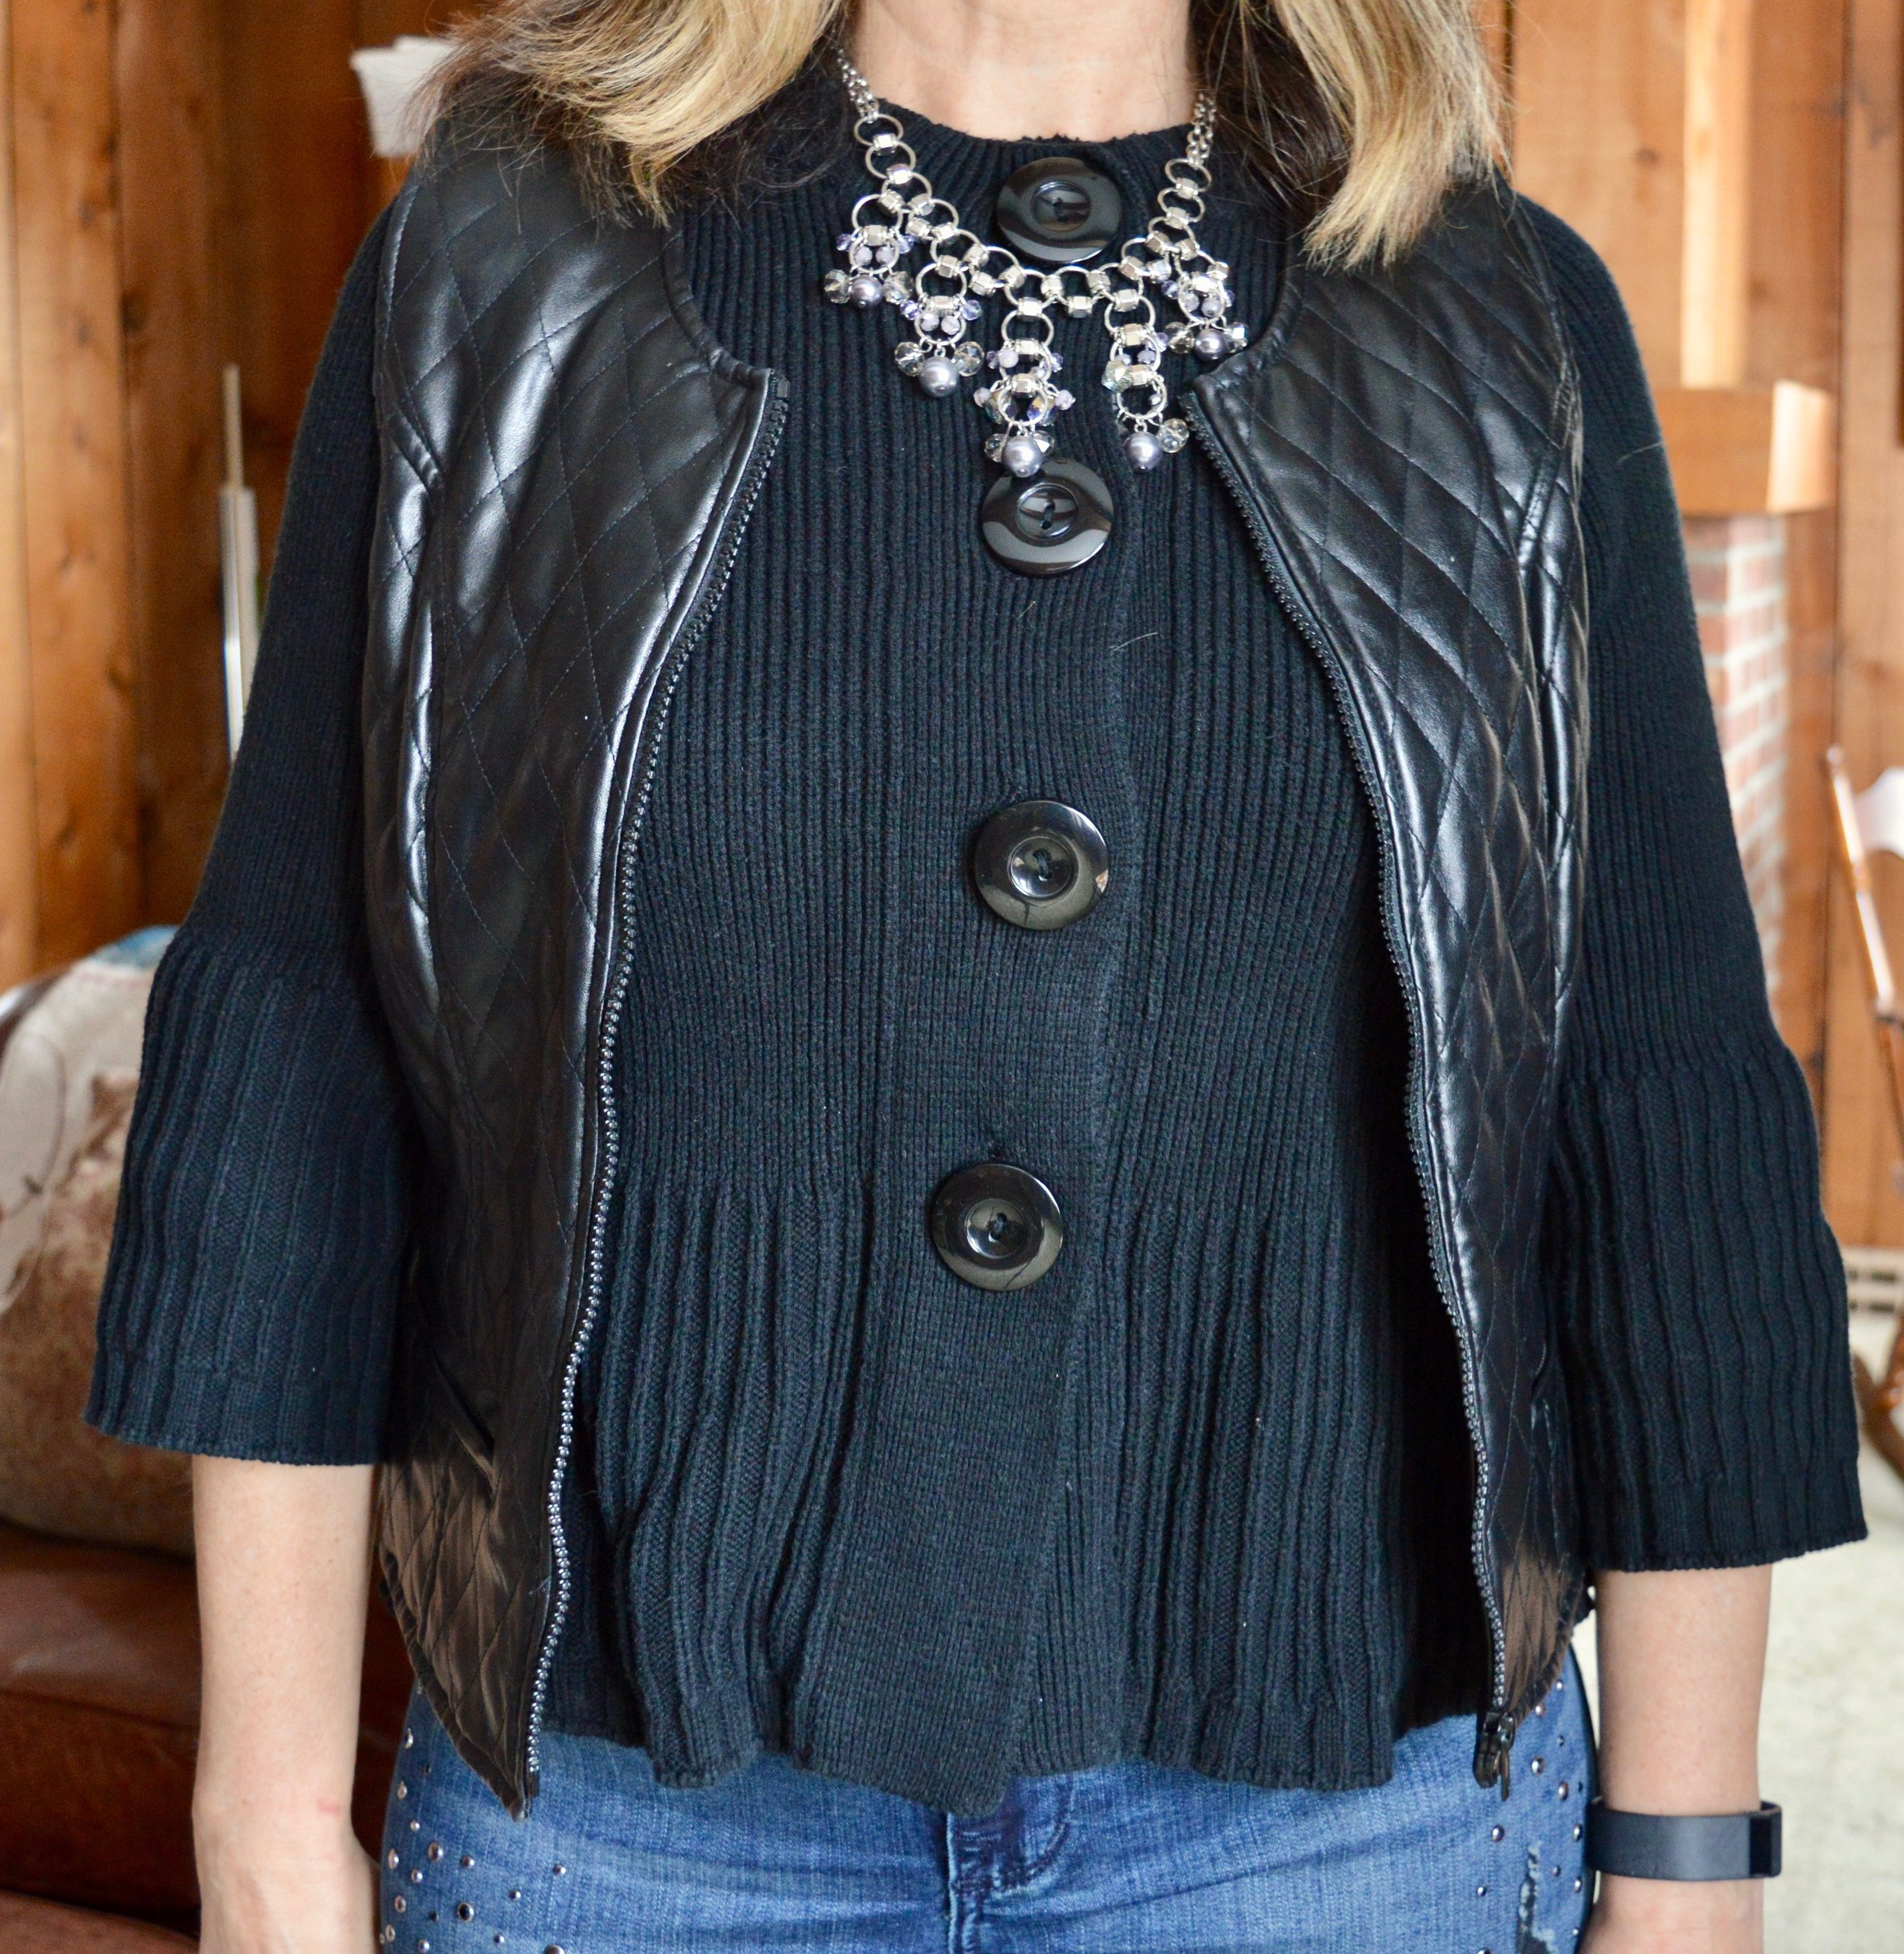 Layering love - wearing a short vest over a short cardi